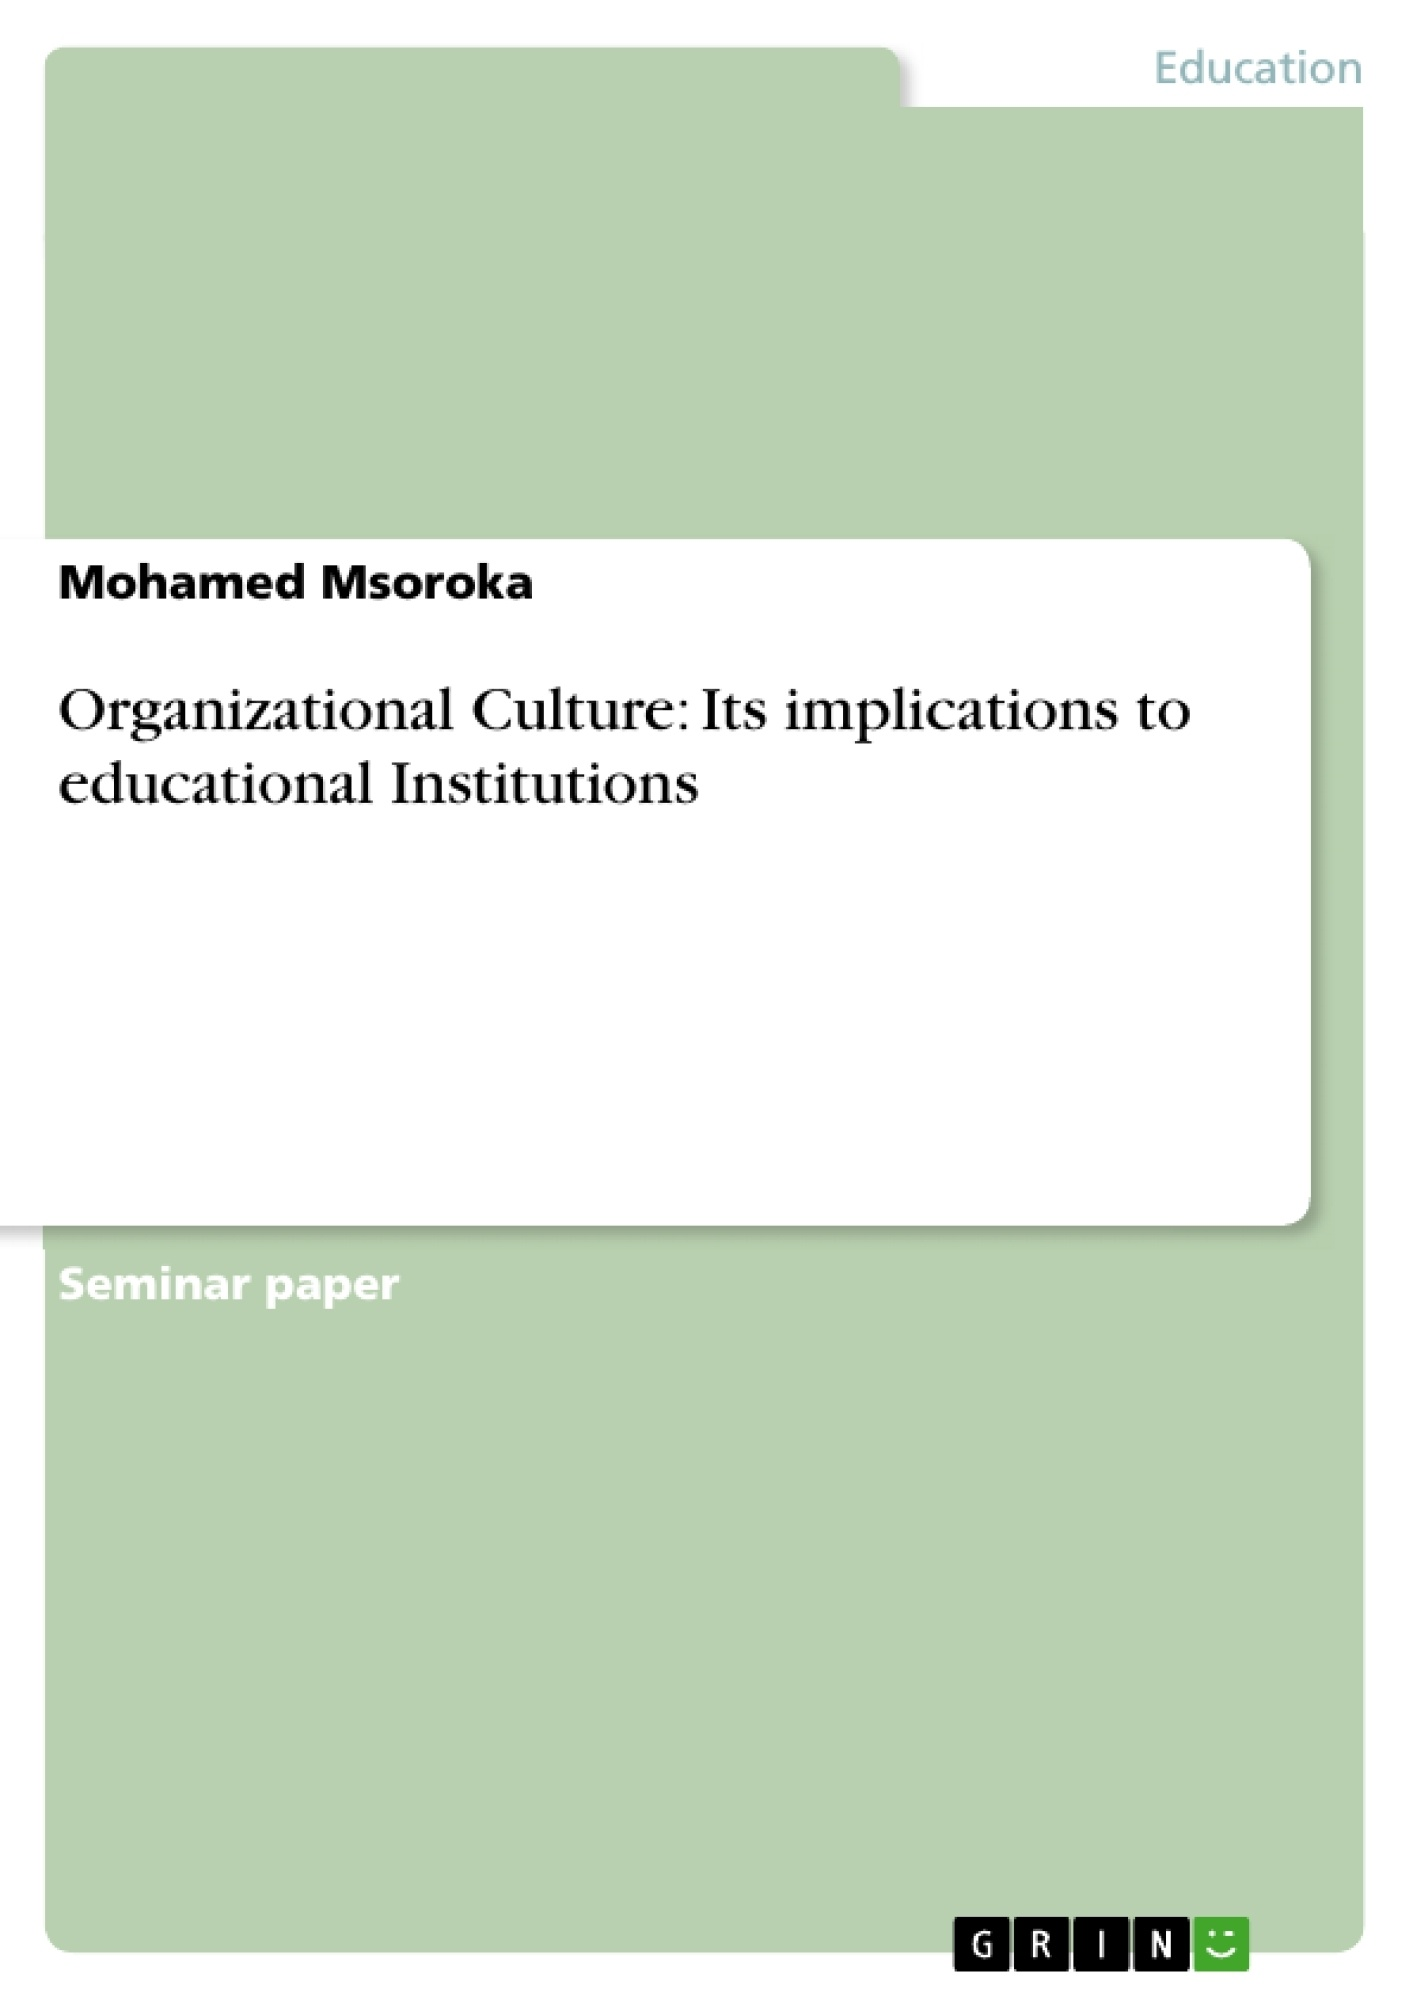 Title: Organizational Culture: Its implications to educational Institutions